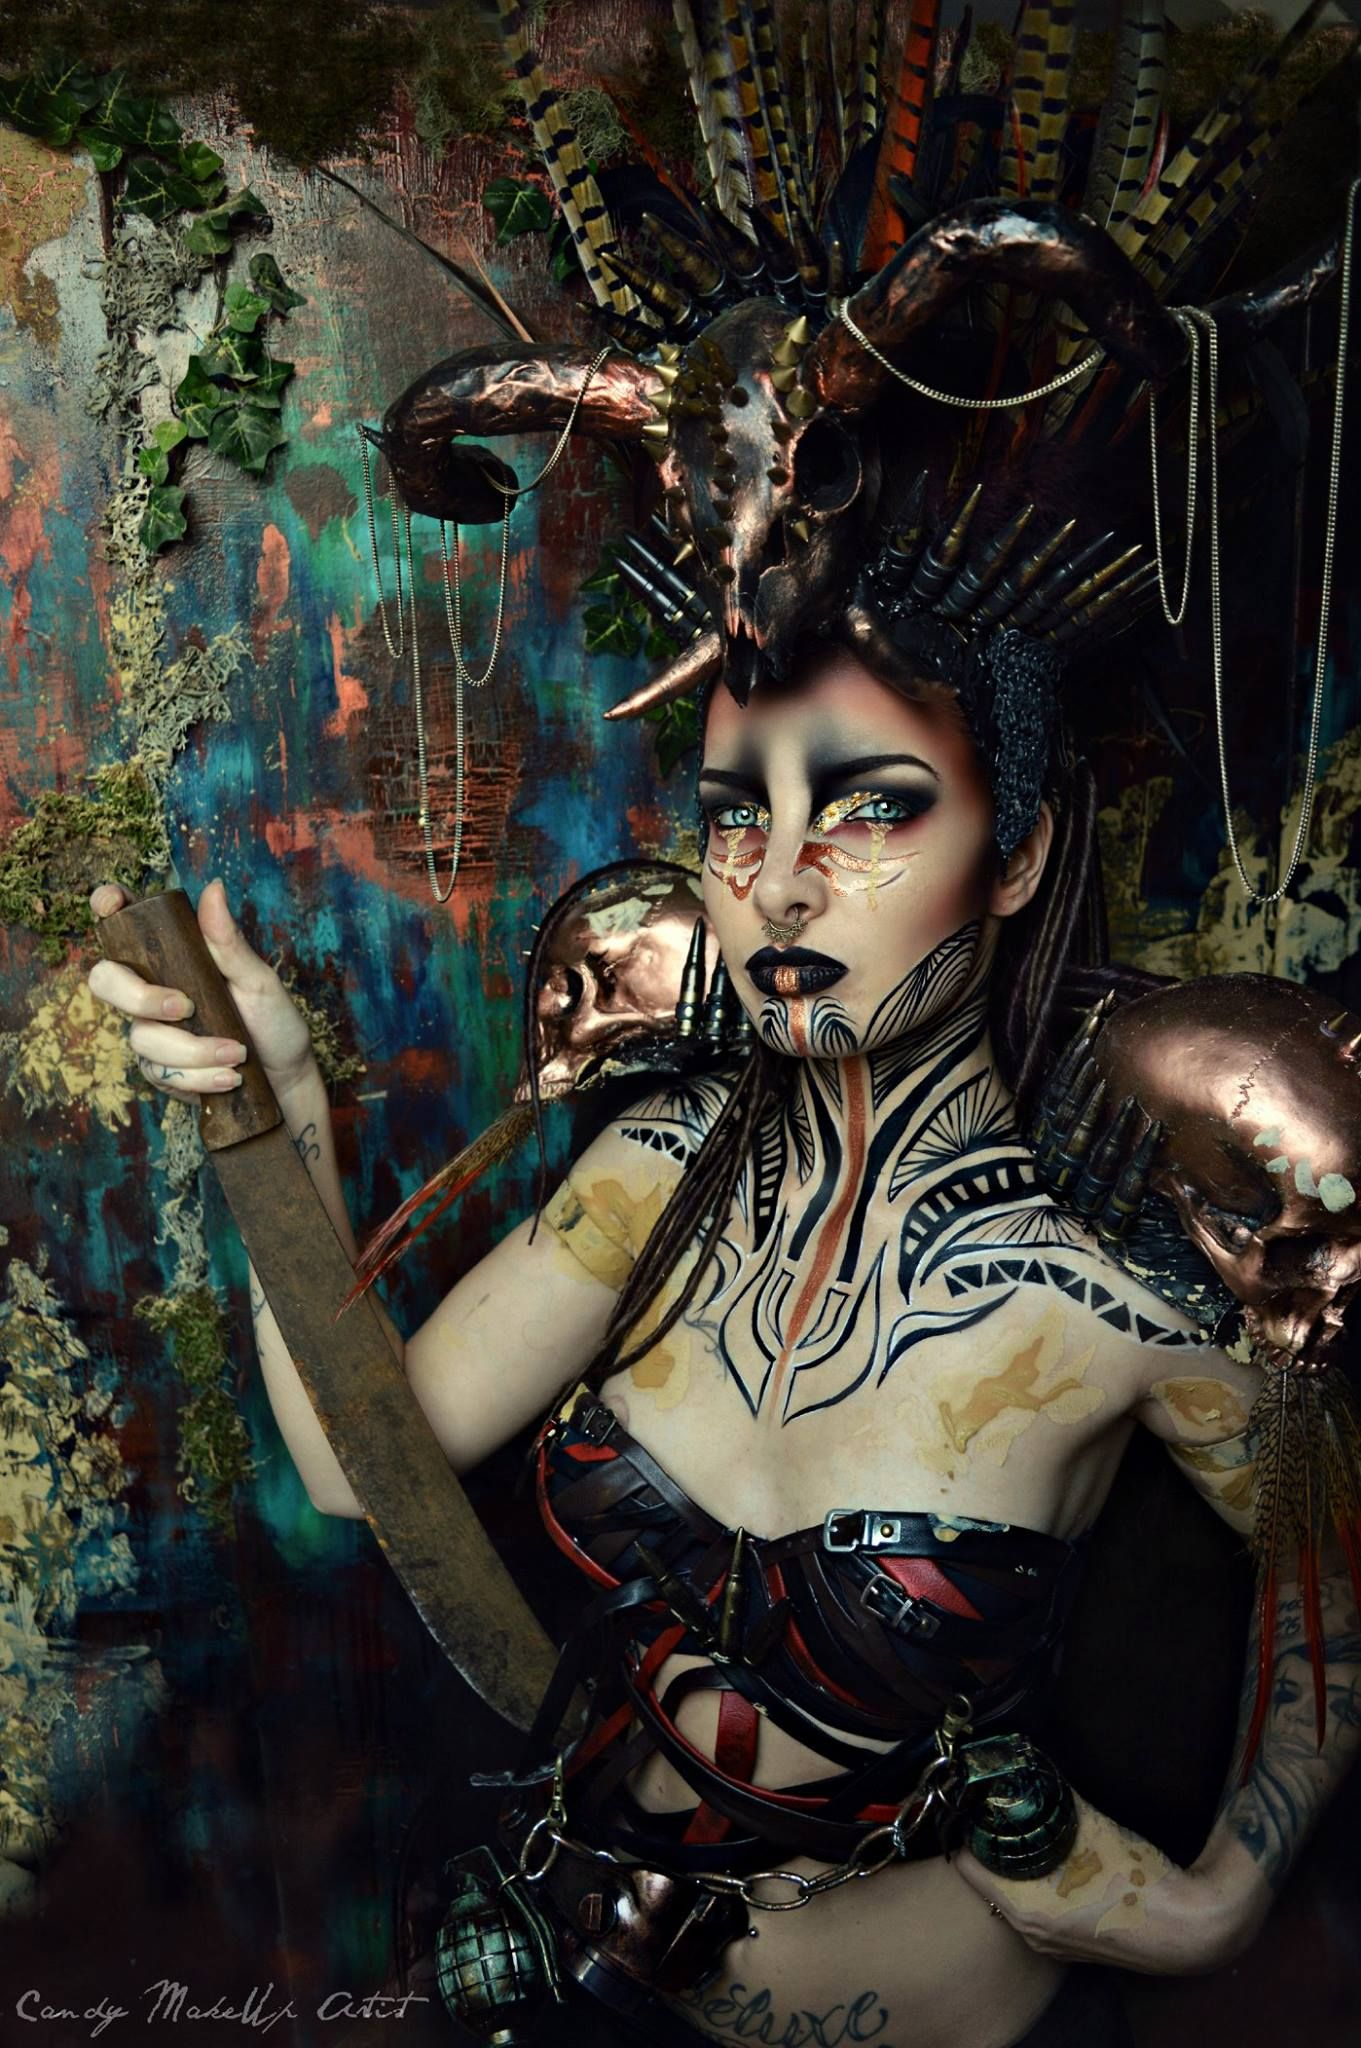 MAD MAX  Model : lioramour  Make-up/ styling/ photo: candy makeup artist   Want to buy handmade styling/ headdresses, or hire me? Click on the link!